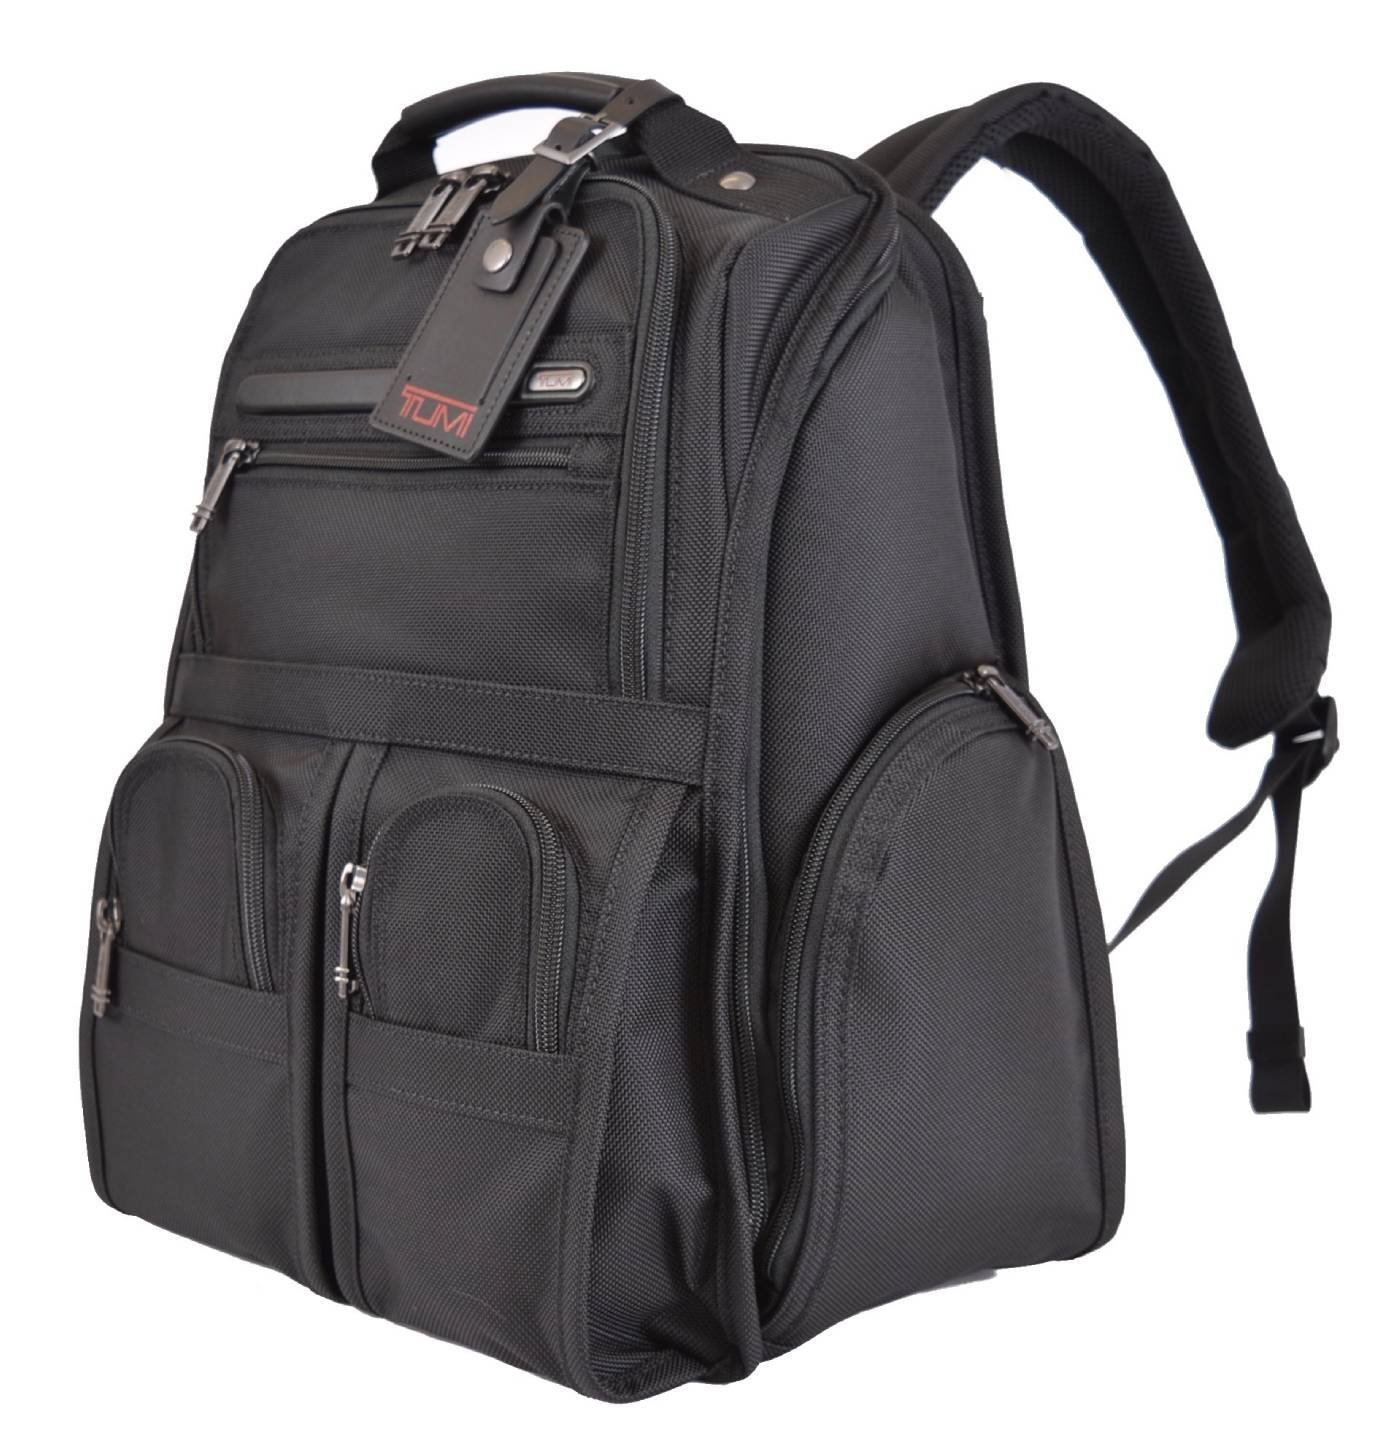 9e3333fba6ba Buy Tumi Alpha Bravo Compact Laptop Brief Backpack Grey in Cheap Price on m .alibaba.com